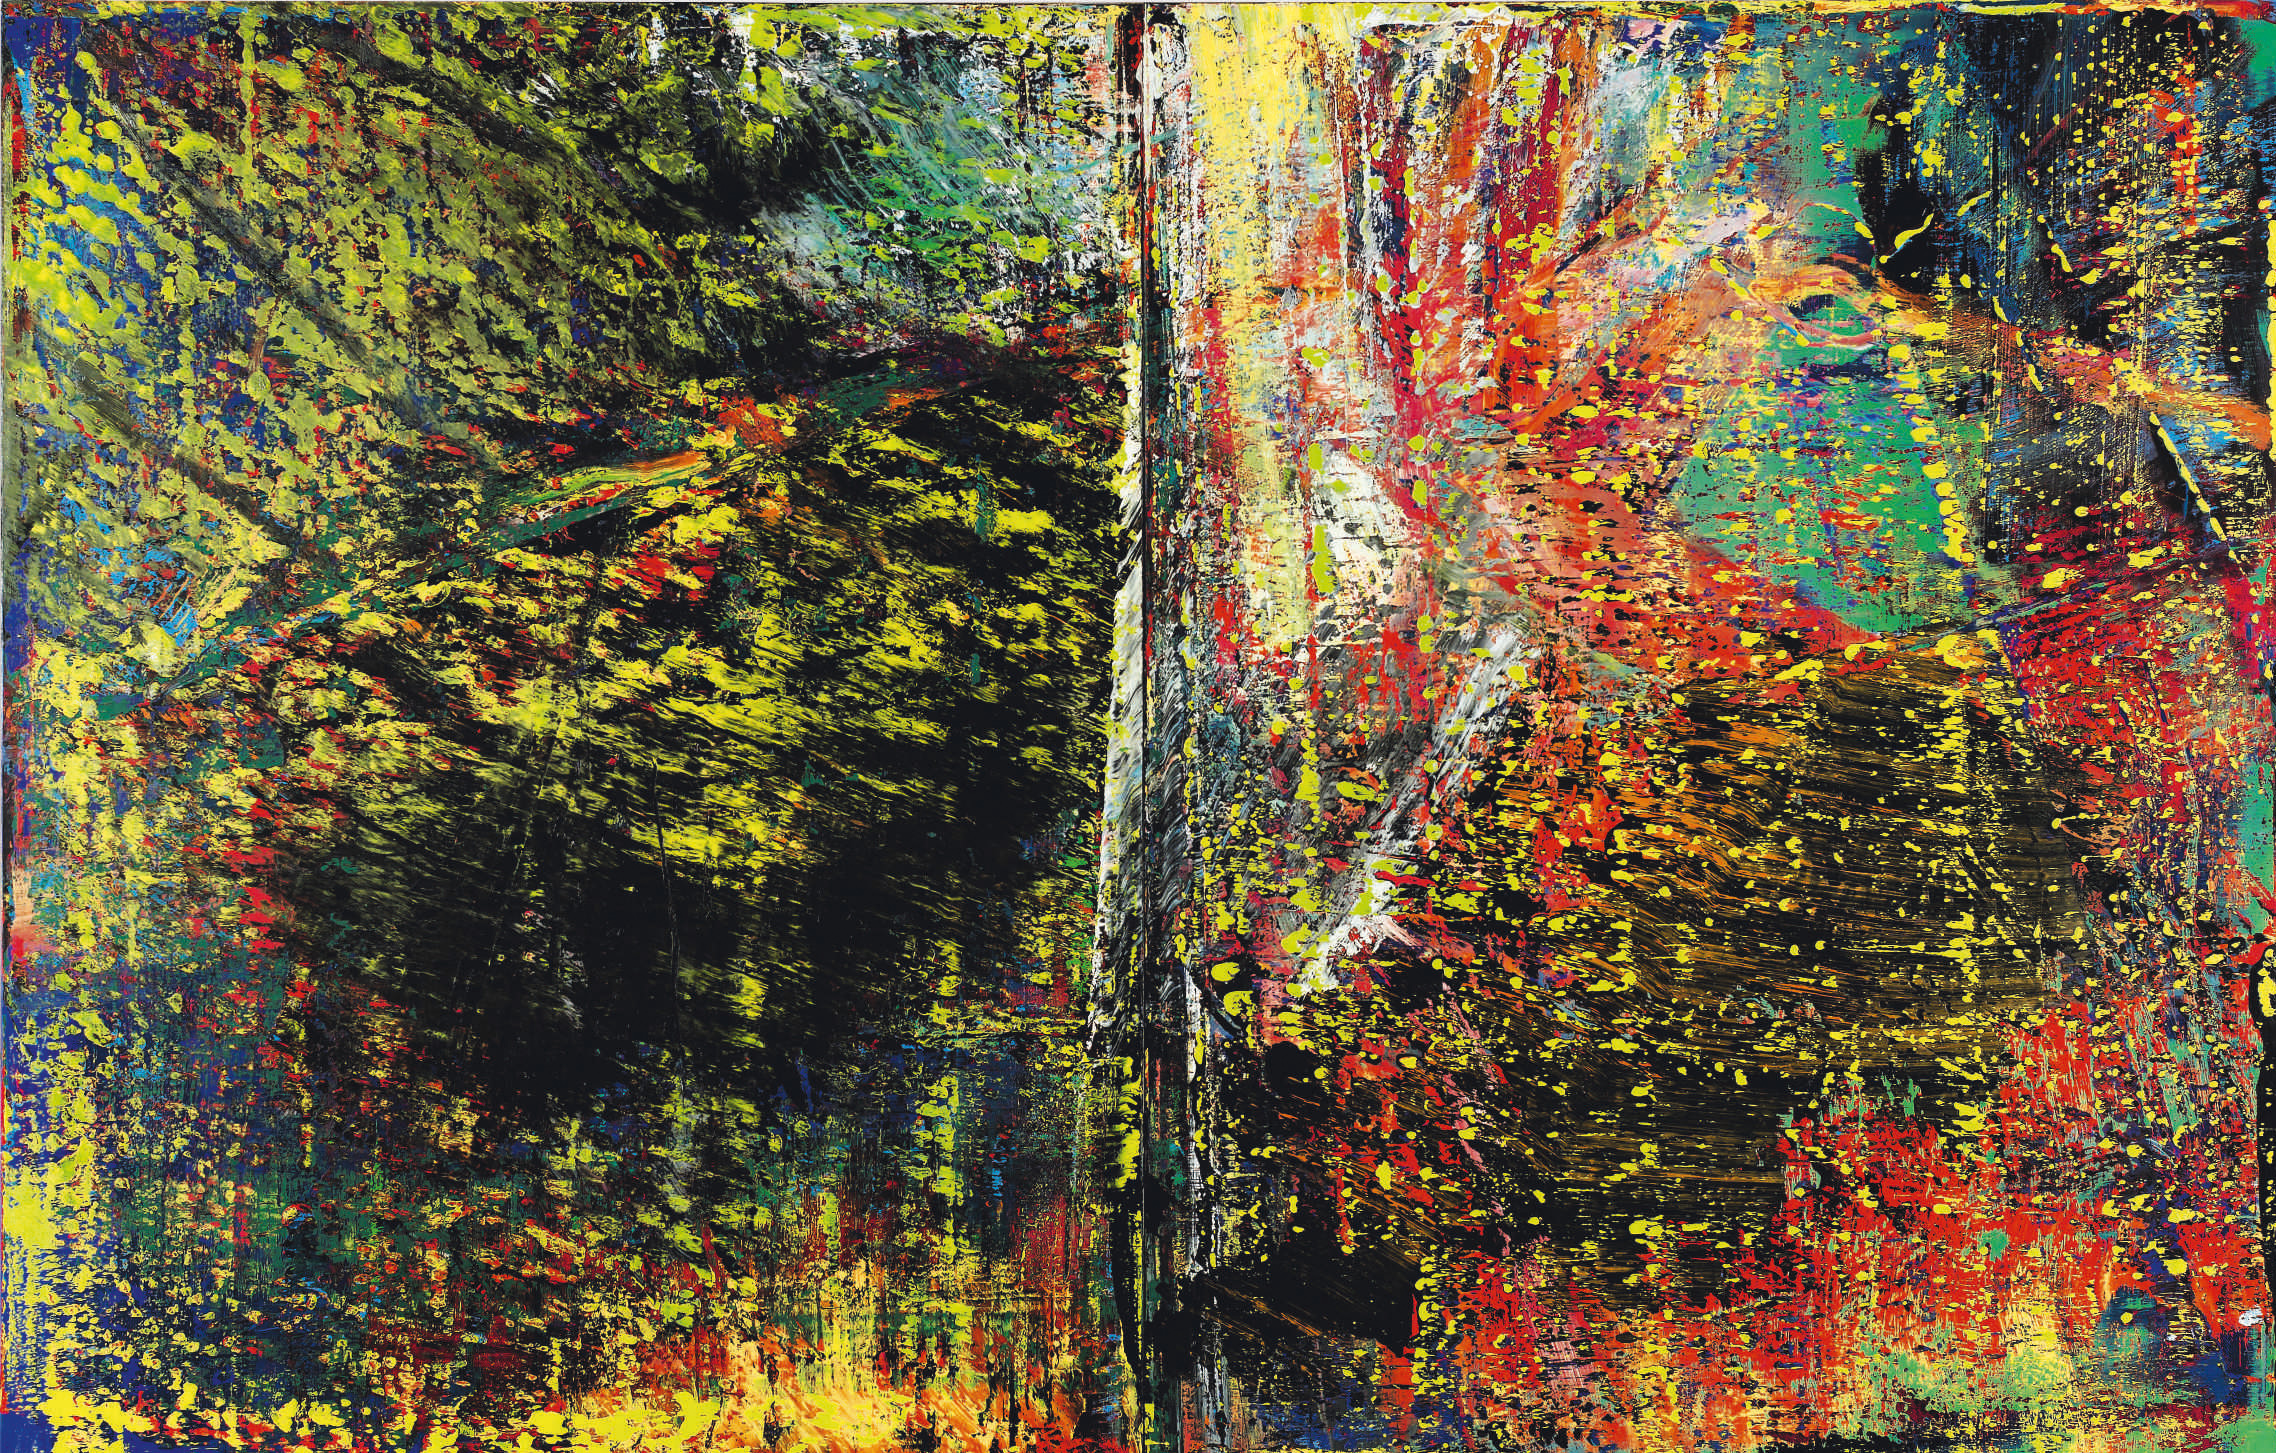 Abstrakte Bilder Gerhard Richter Sotheby S Announces 30m Richter Abstract Diptych For November